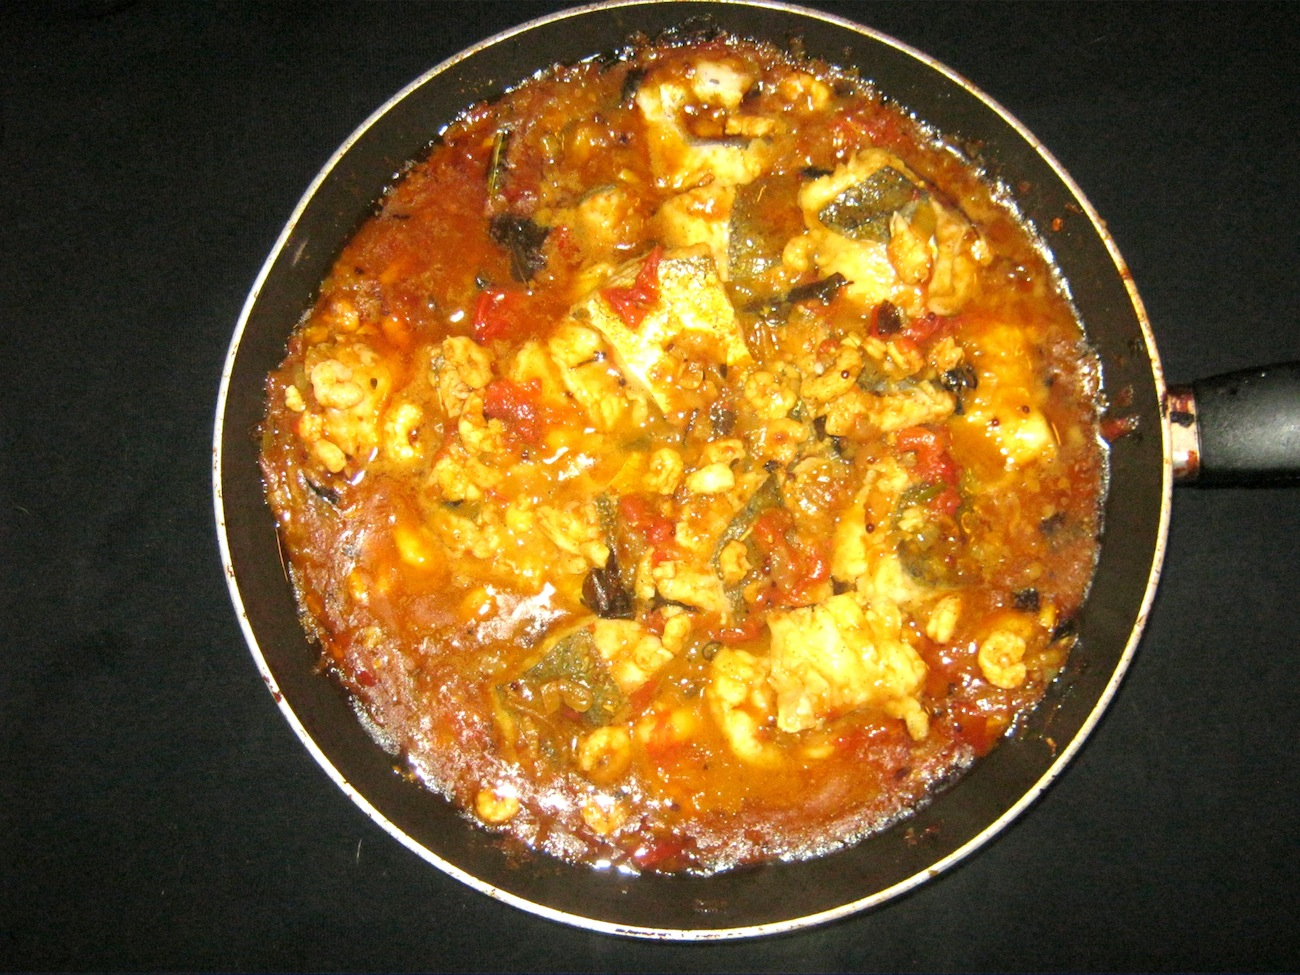 Andhra Fish Curry in a pan / skillet